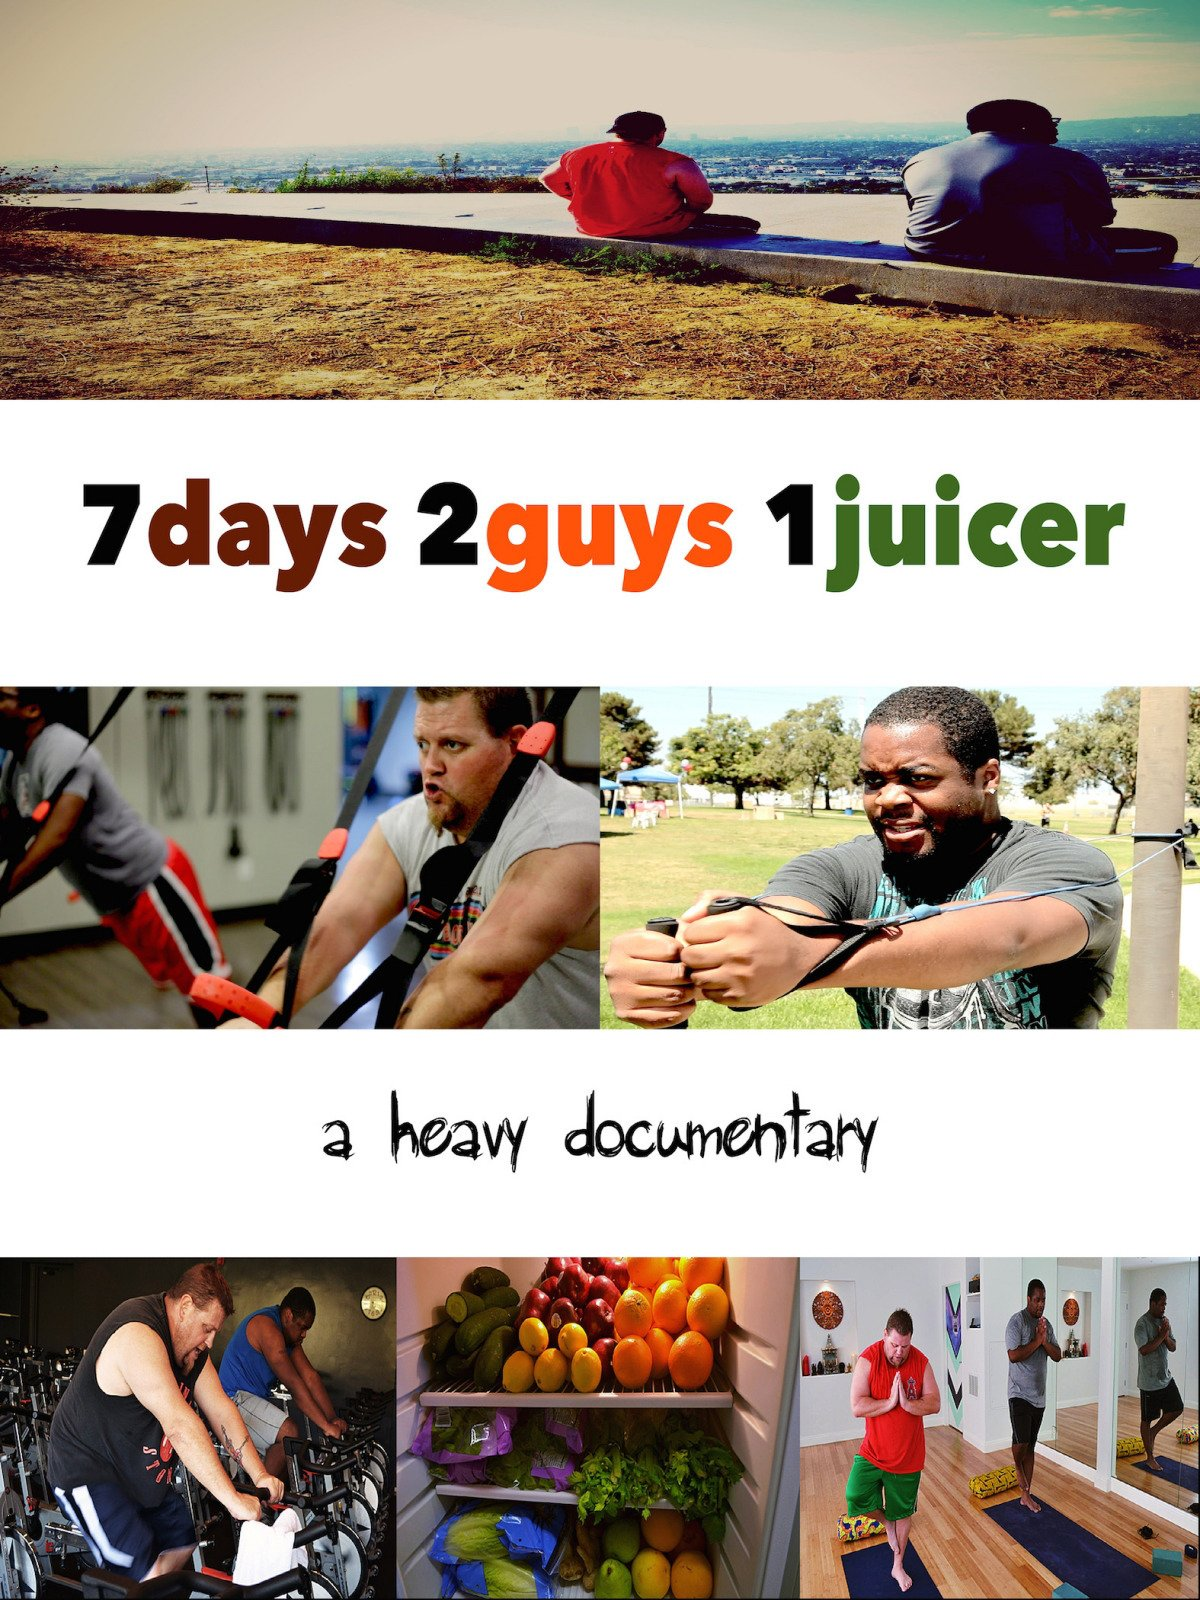 7 Days 2 Guys 1 Juicer